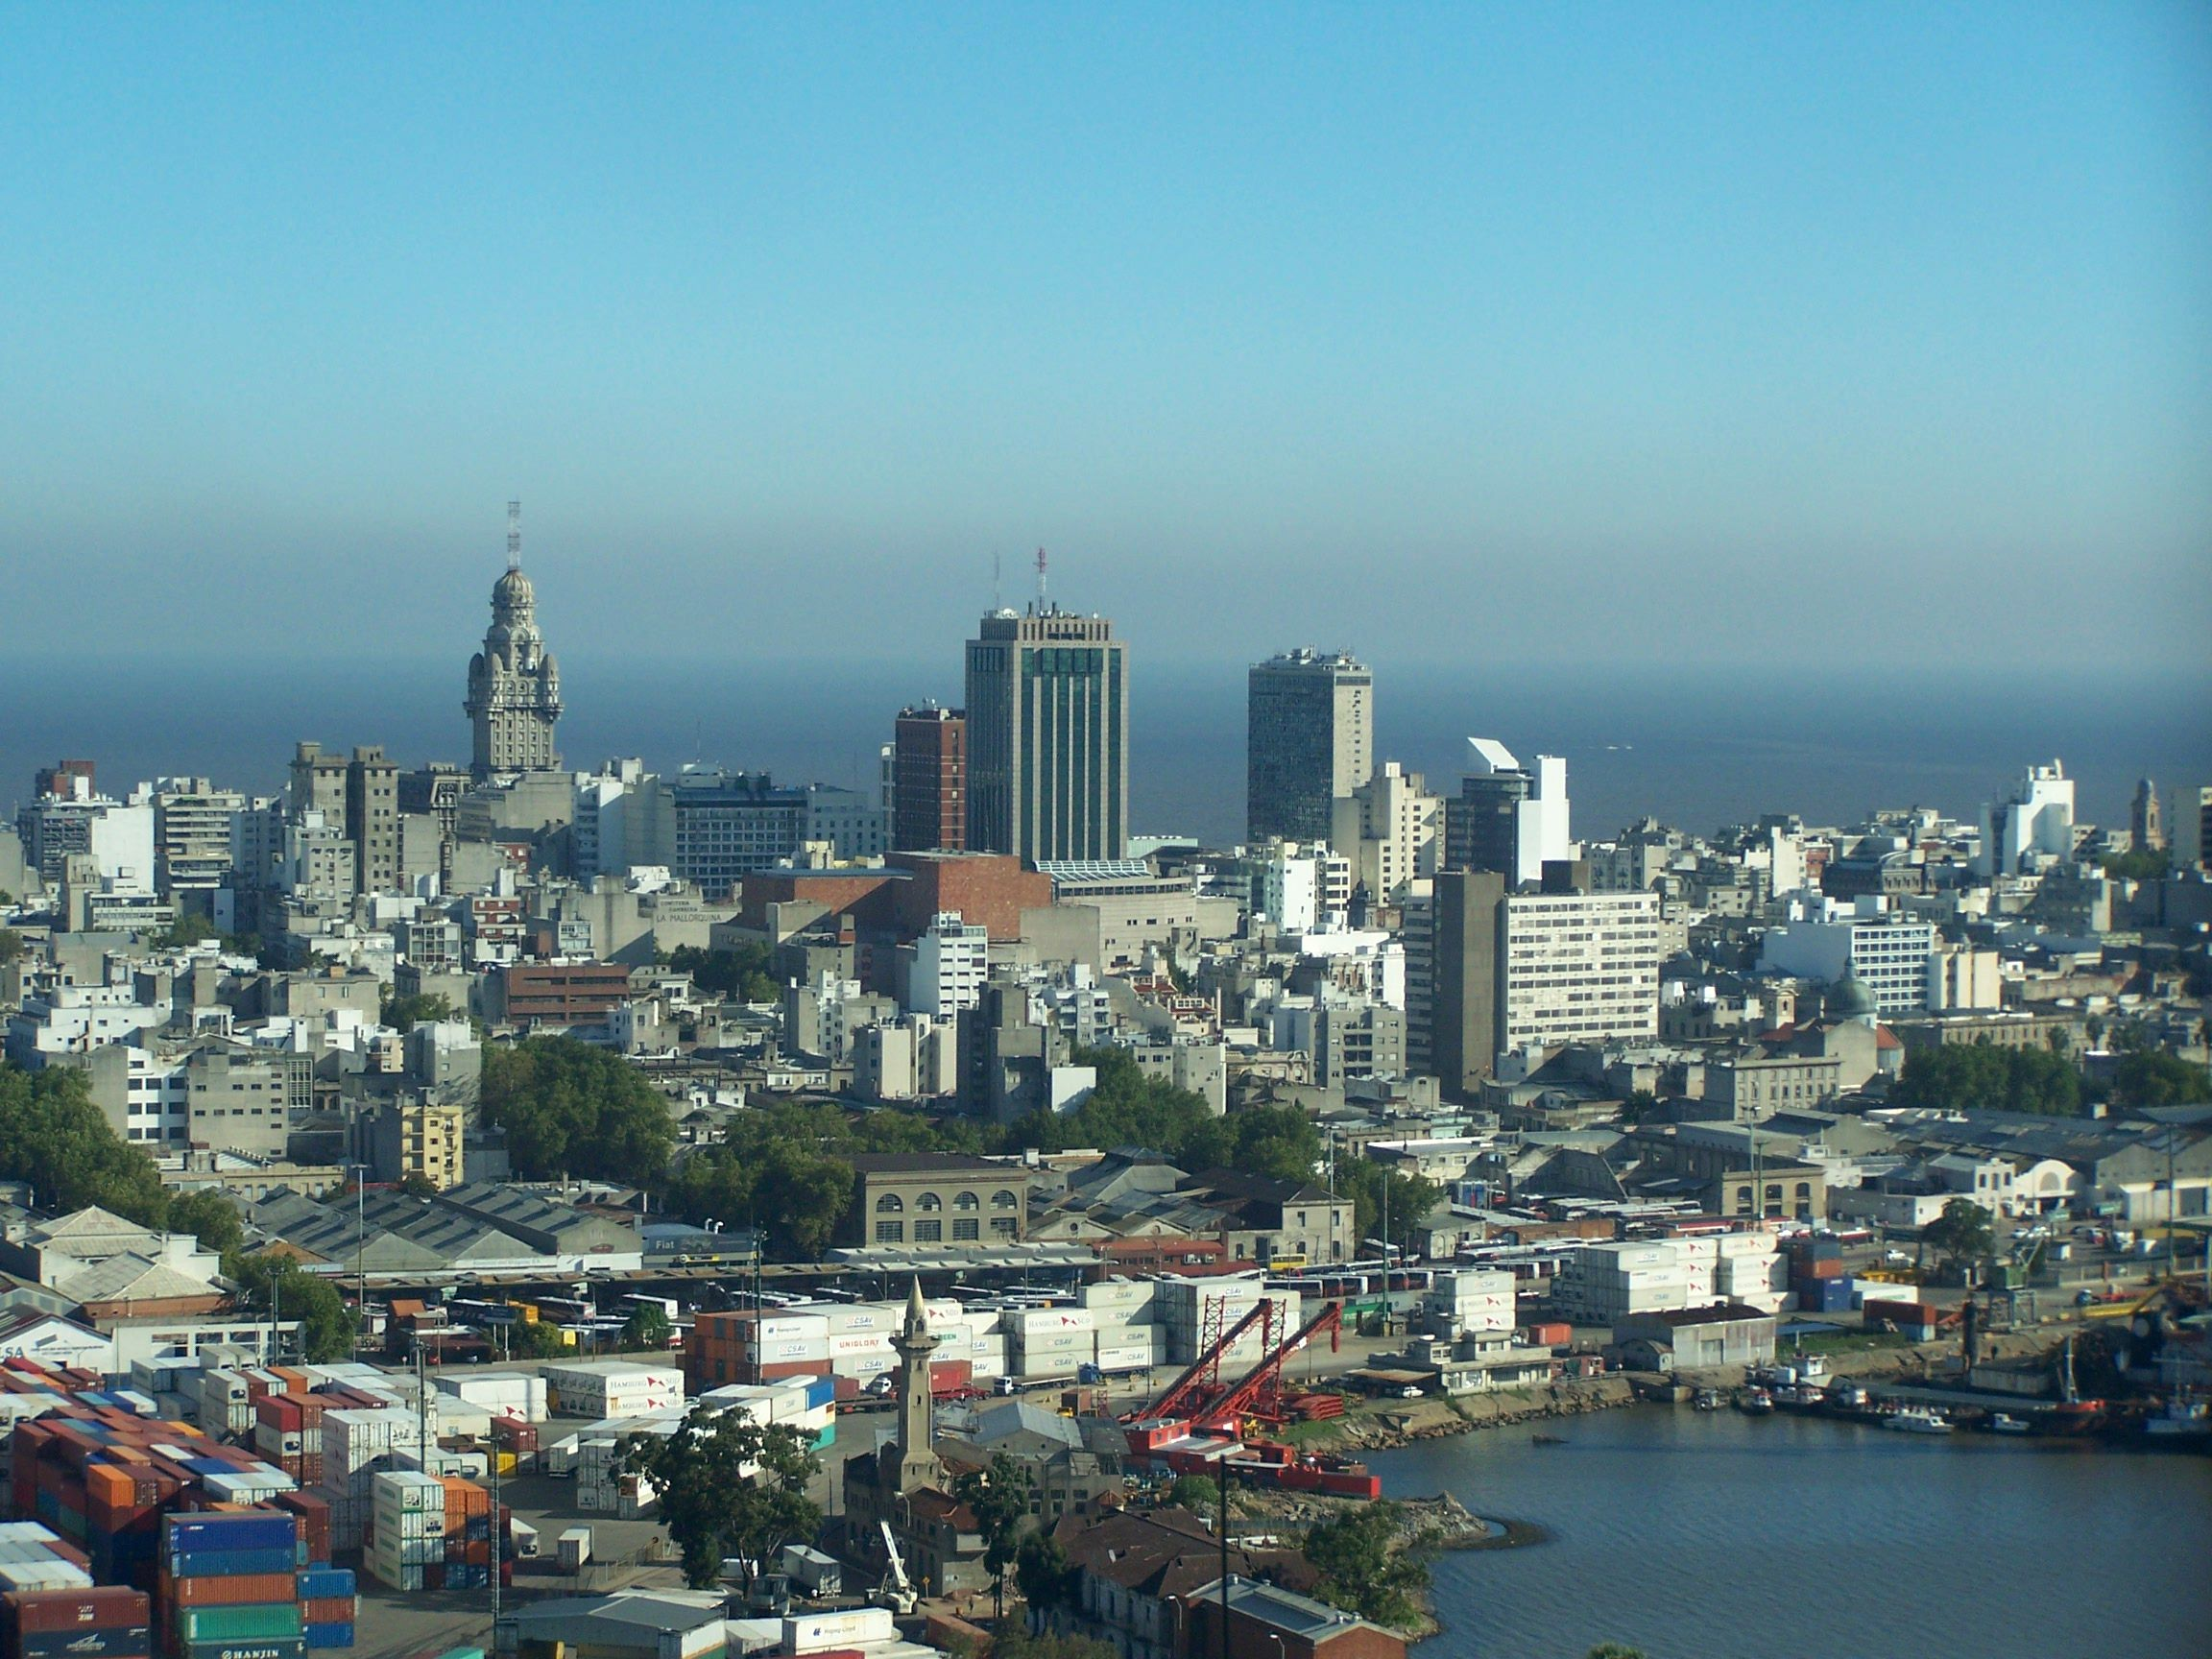 Montevideo is the capital and largest city of Uruguay